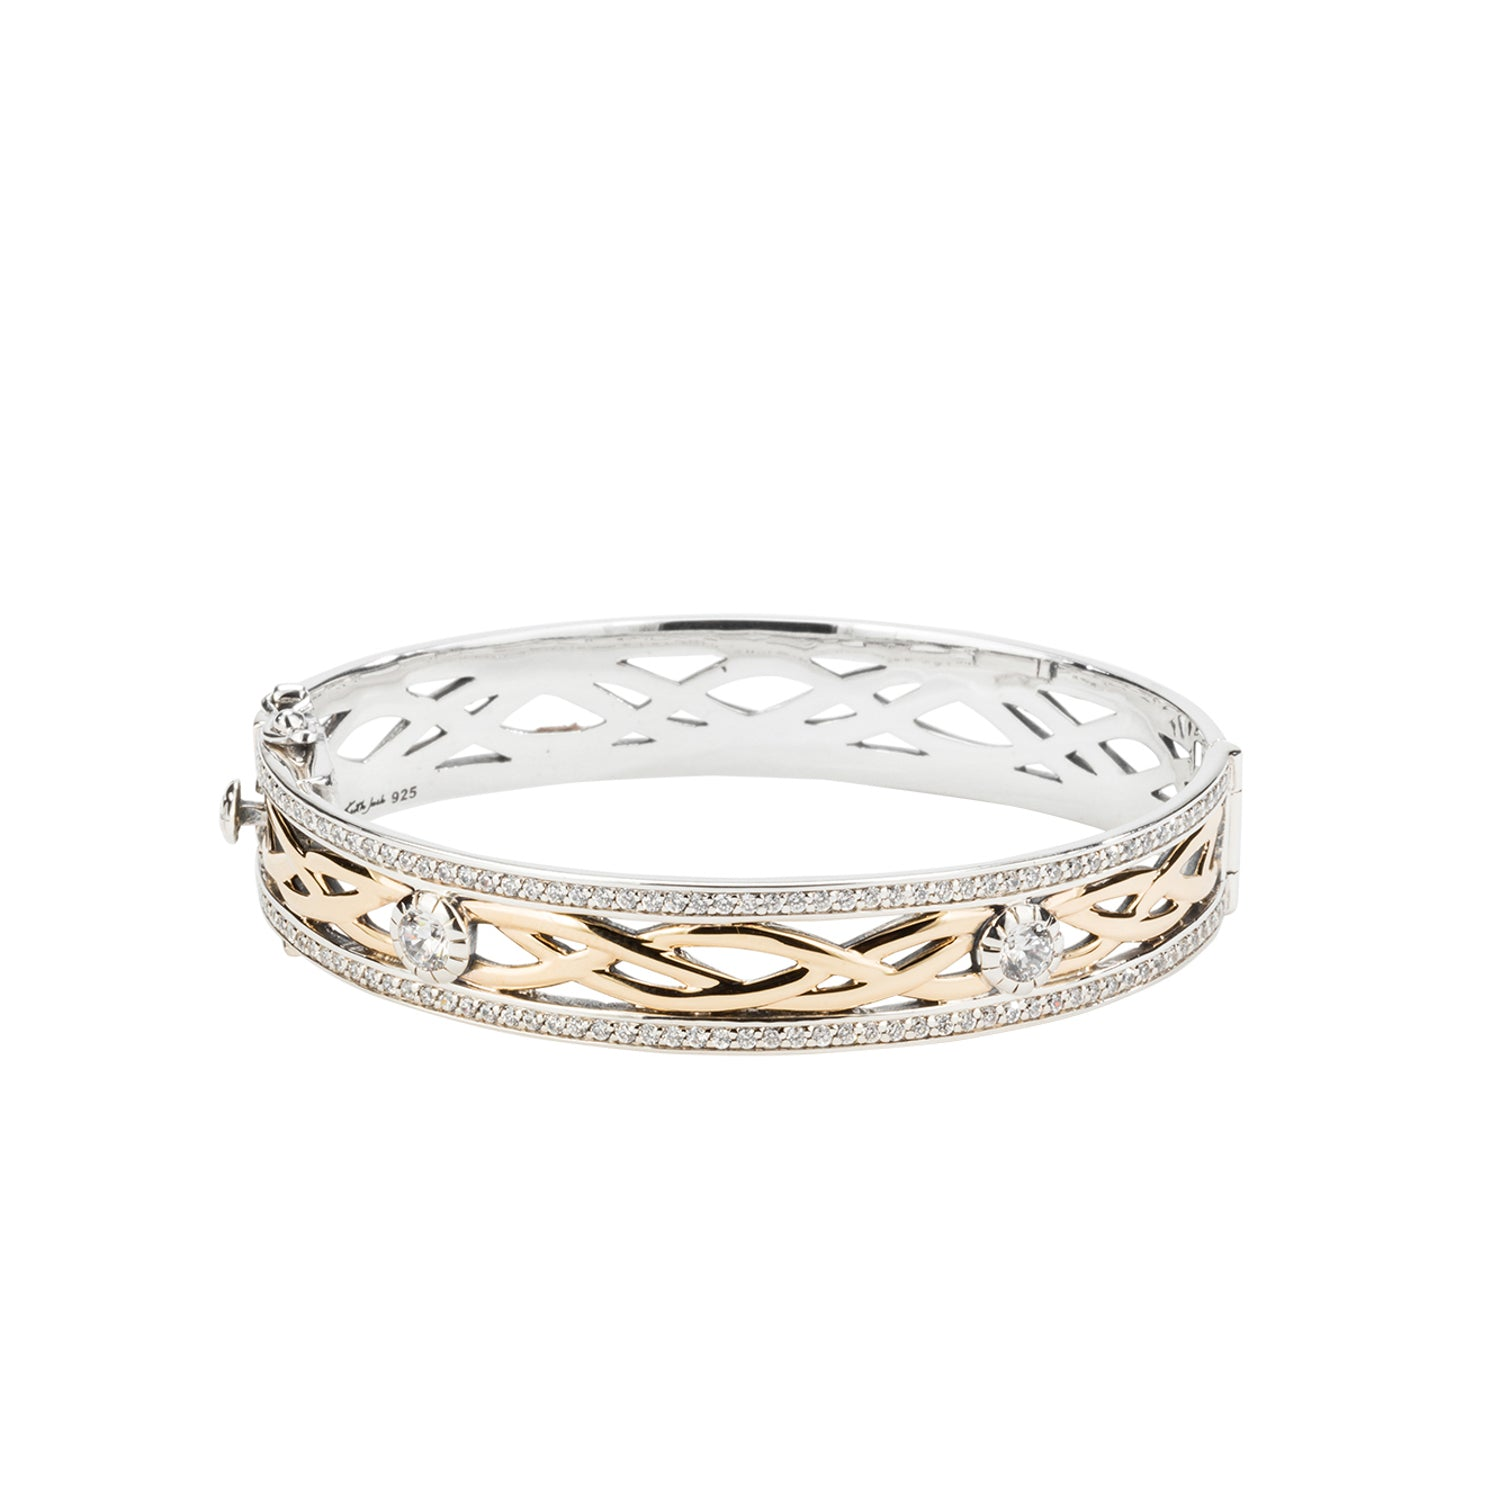 Bangle Oxidized 10k Yellow CZ Brave Heart Bangle from welch and company jewelers near syracuse ny